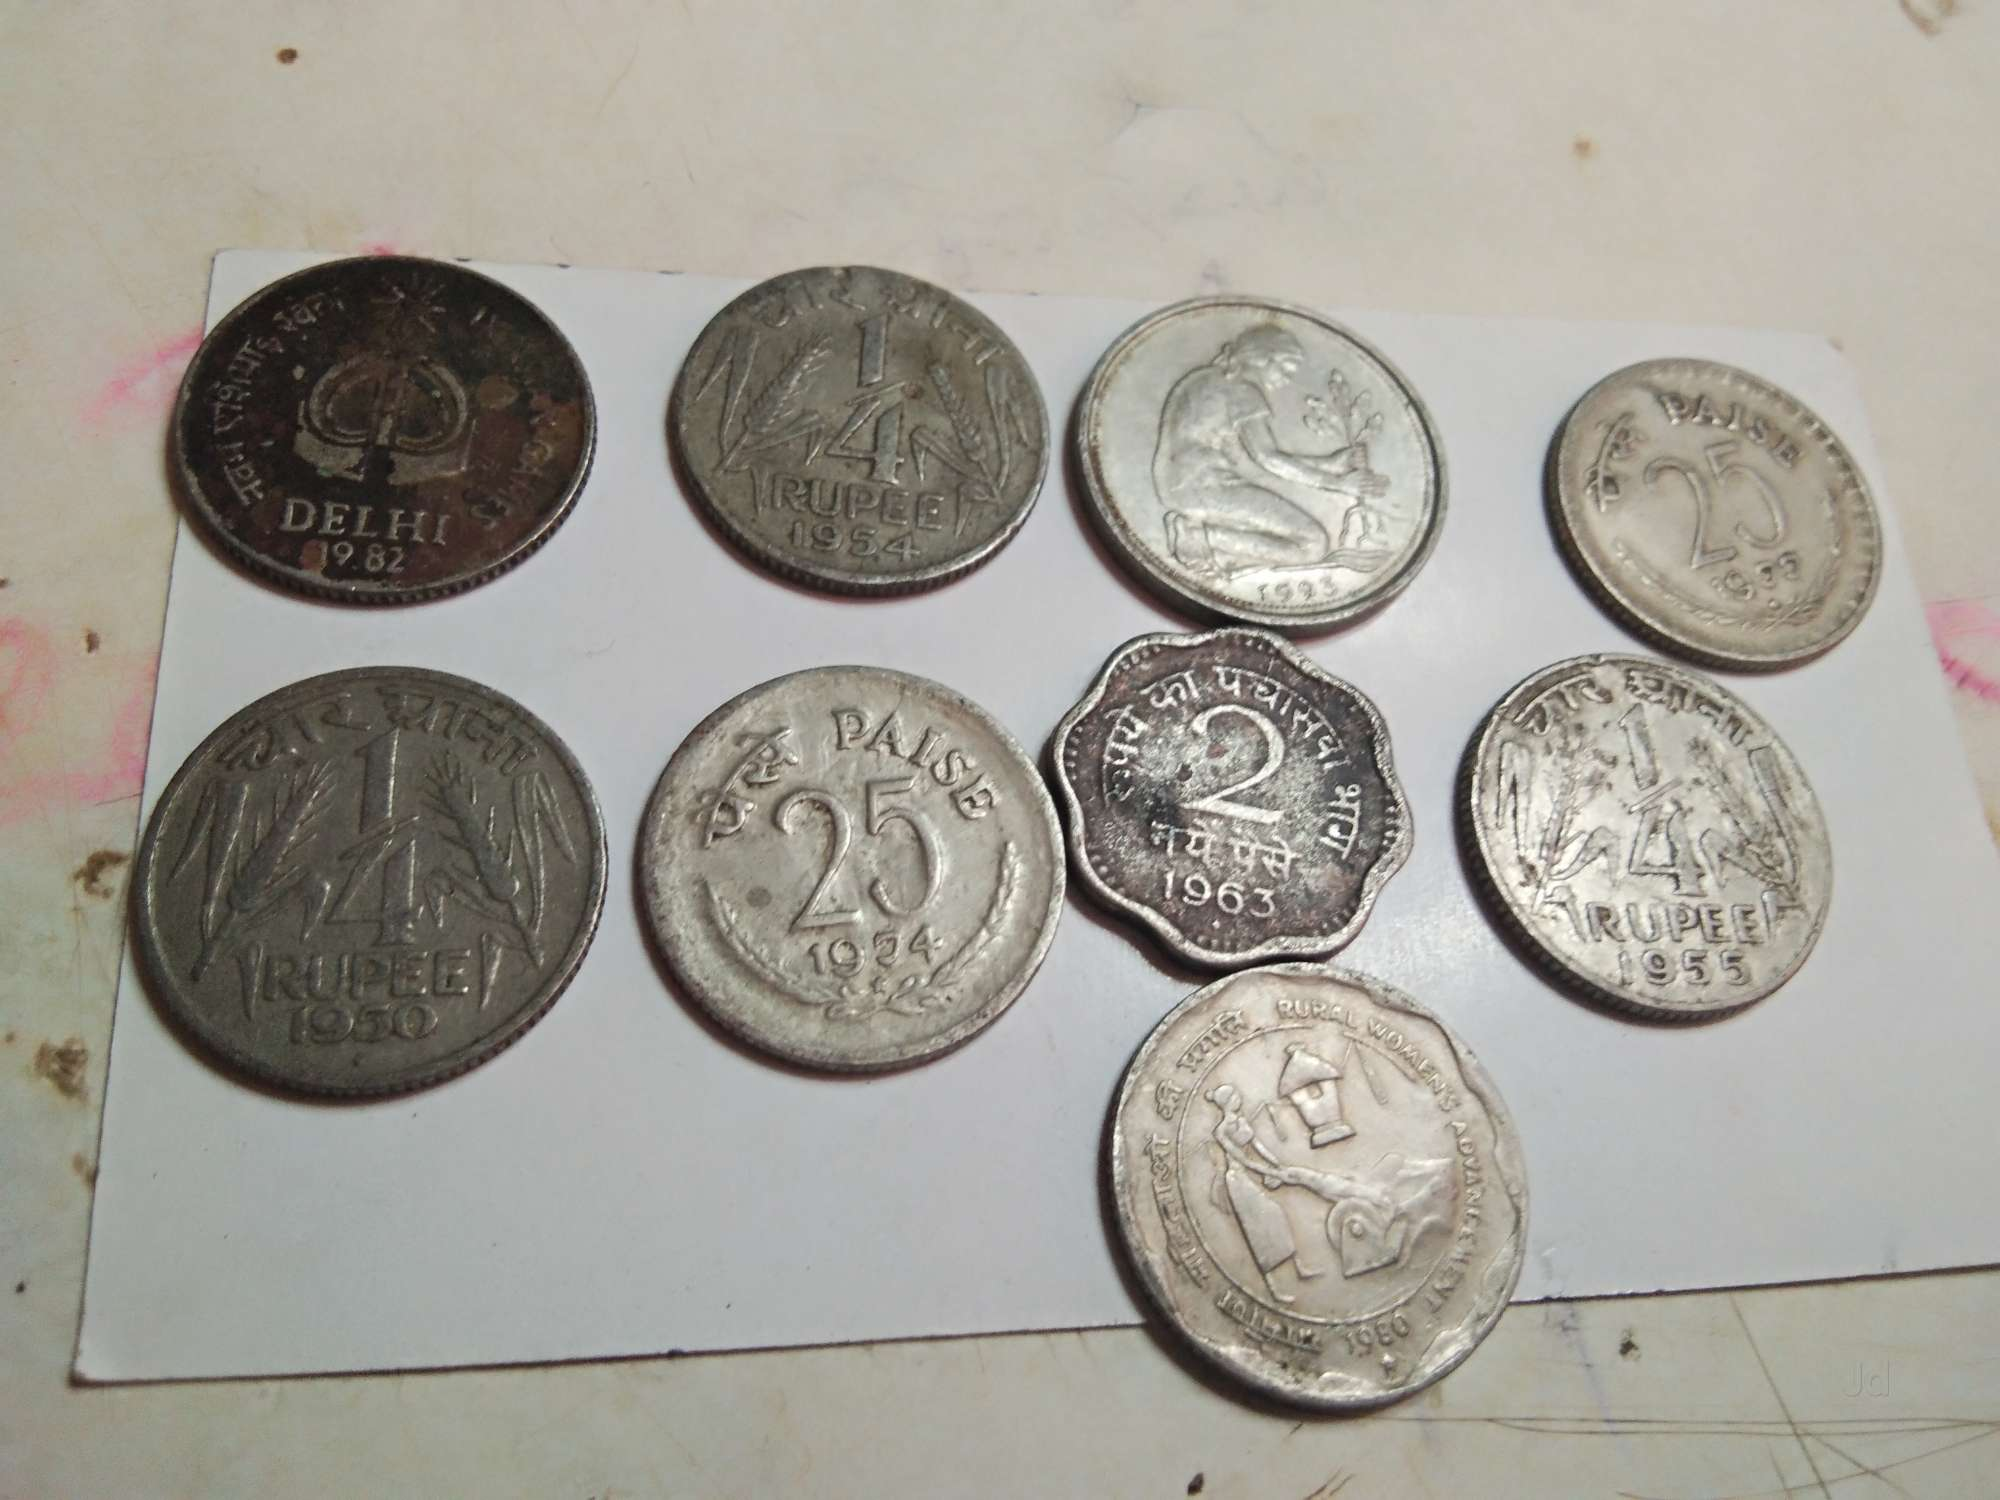 Indian Old Coins Photos, Alanahalli, Mysore- Pictures & Images ...